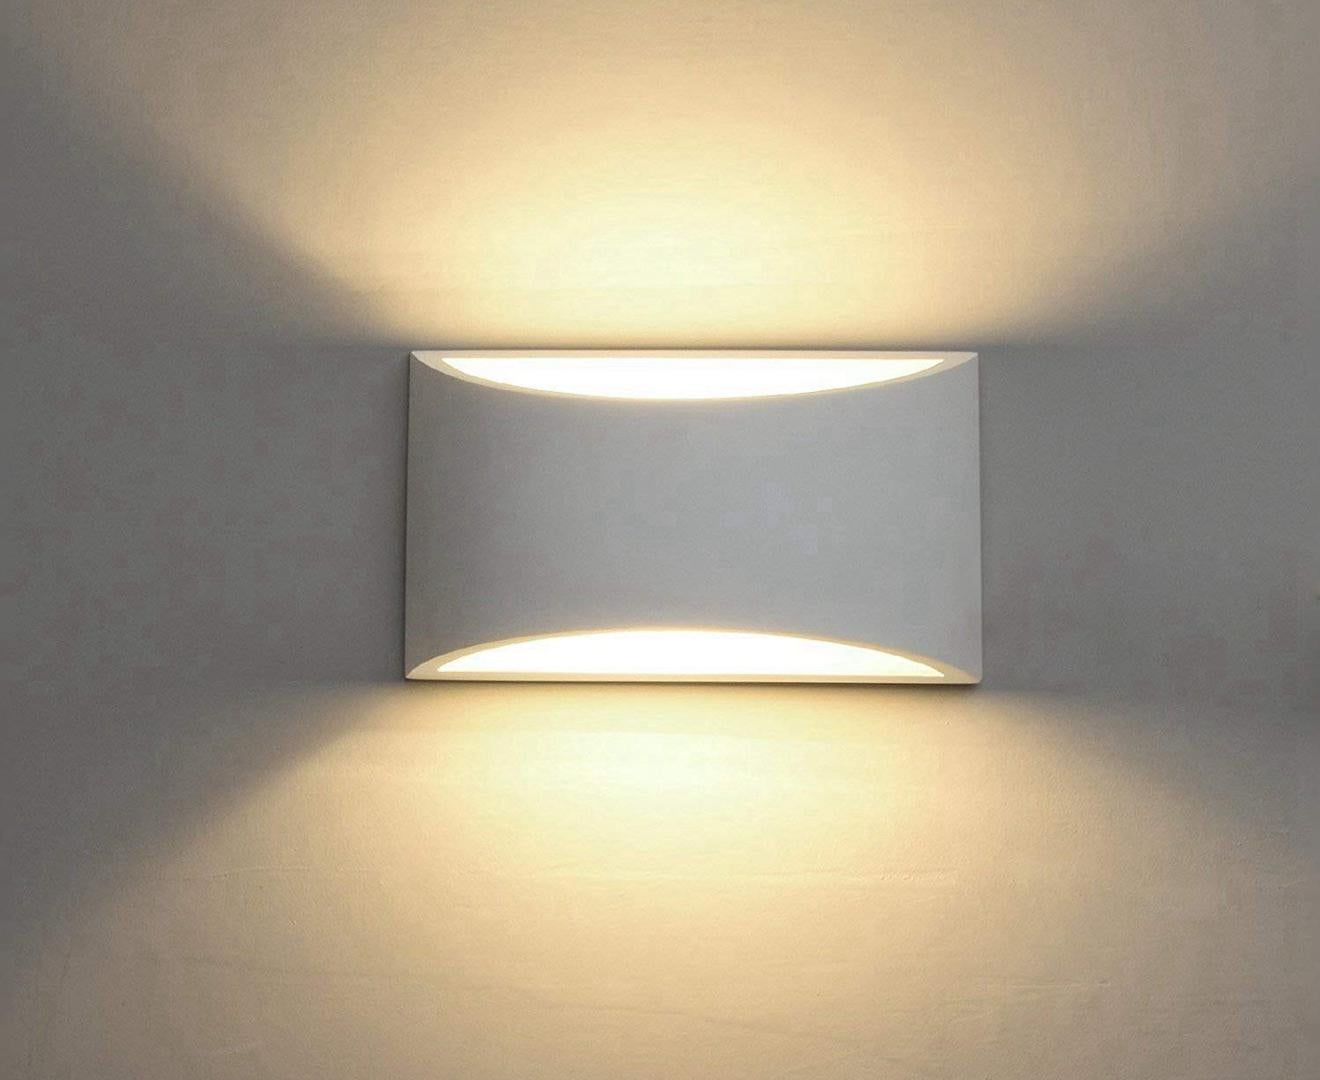 modern led wall sconce lighting fixture lamps 7w warm white 2700k up and down indoor plaster wall lamps with g9 bulbs not dimmable warm white light